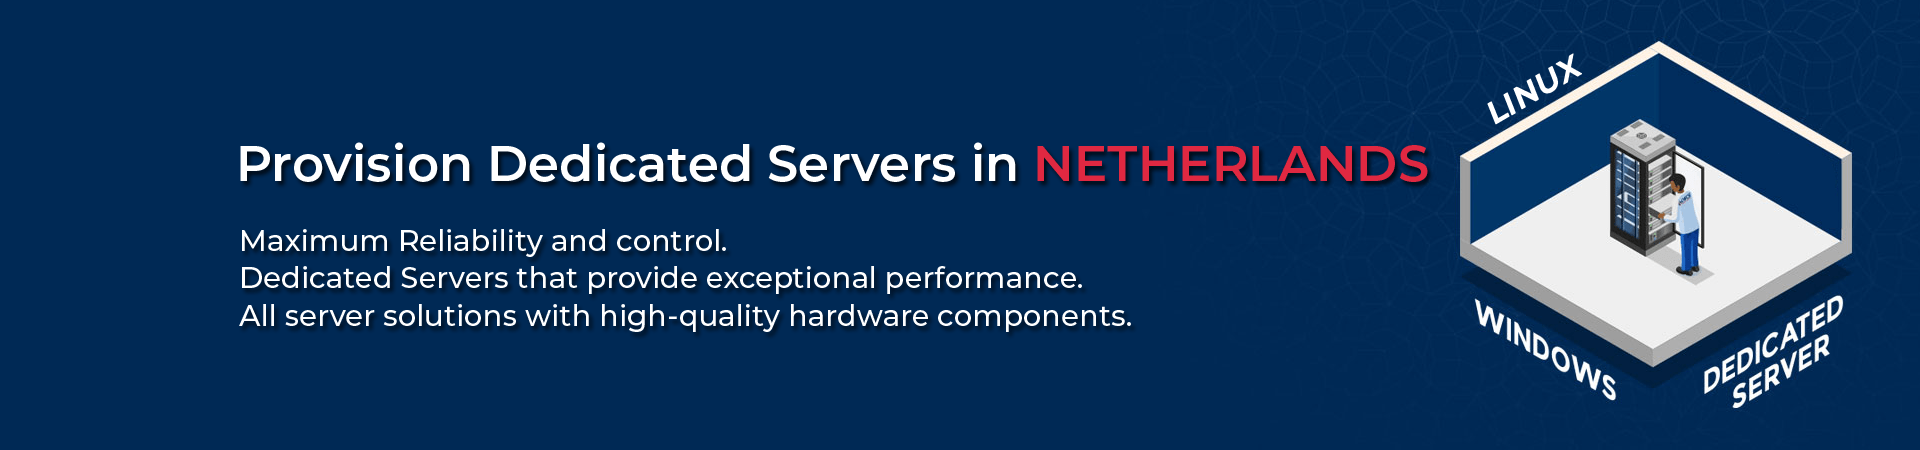 Dedicated Servers in NETHERLANDS